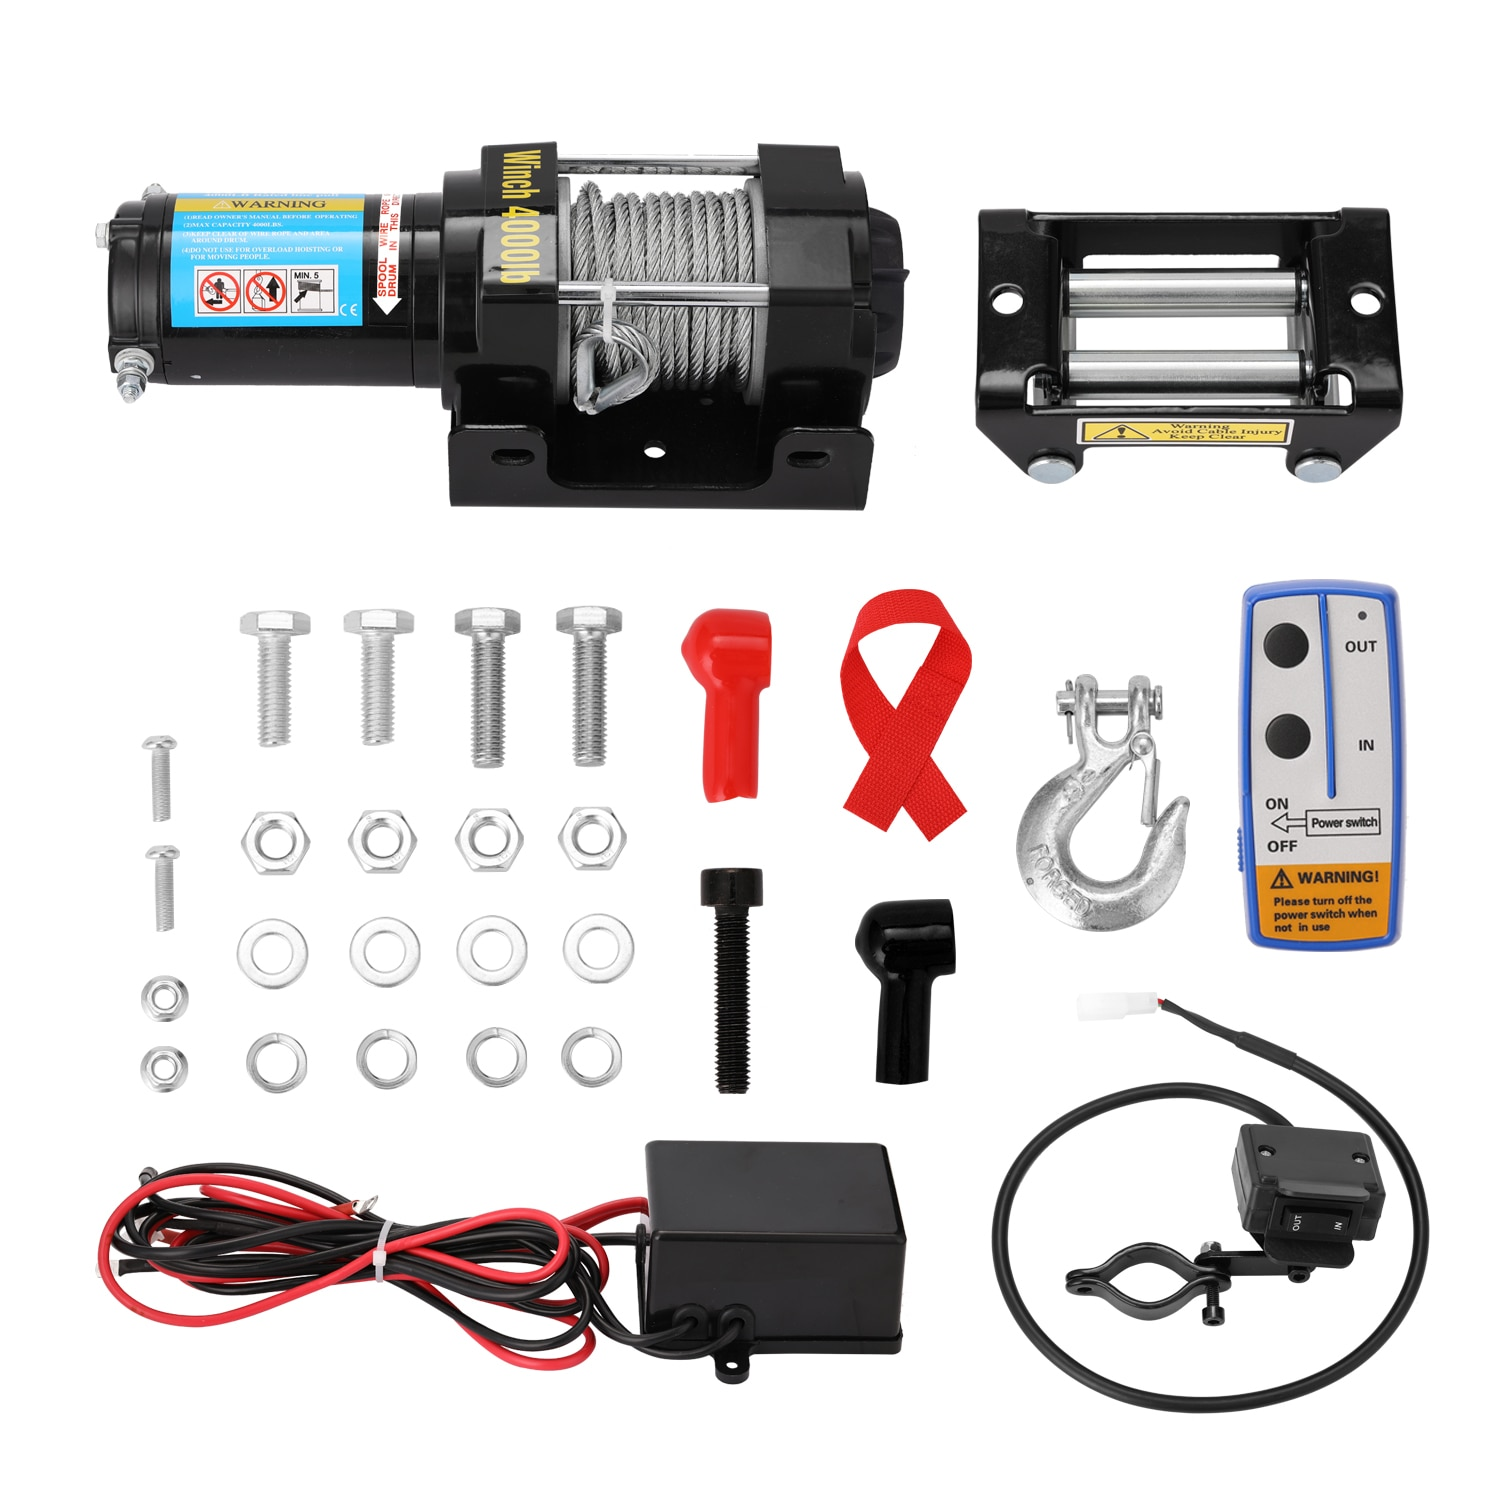 4000lbs Electric Recovery Winch Kit ATV Trailer Truck Car DC12V Remote Control Winchesv Which Has Low Noise And Stable Operation